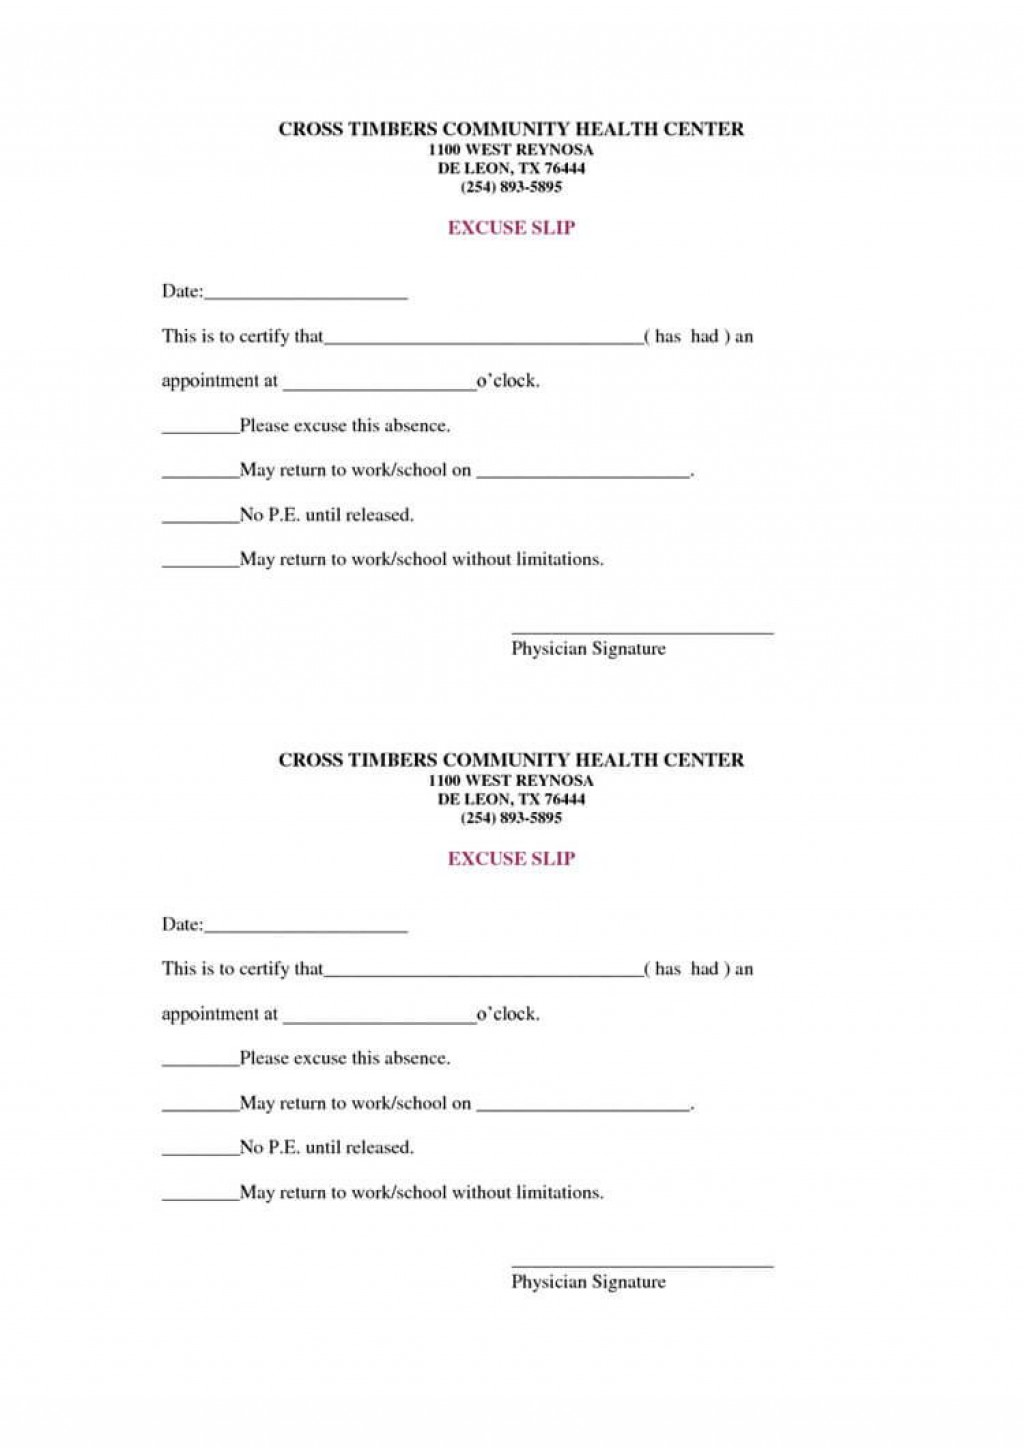 007 Awesome Doctor Note Template Word Example  Fake Document For WorkLarge